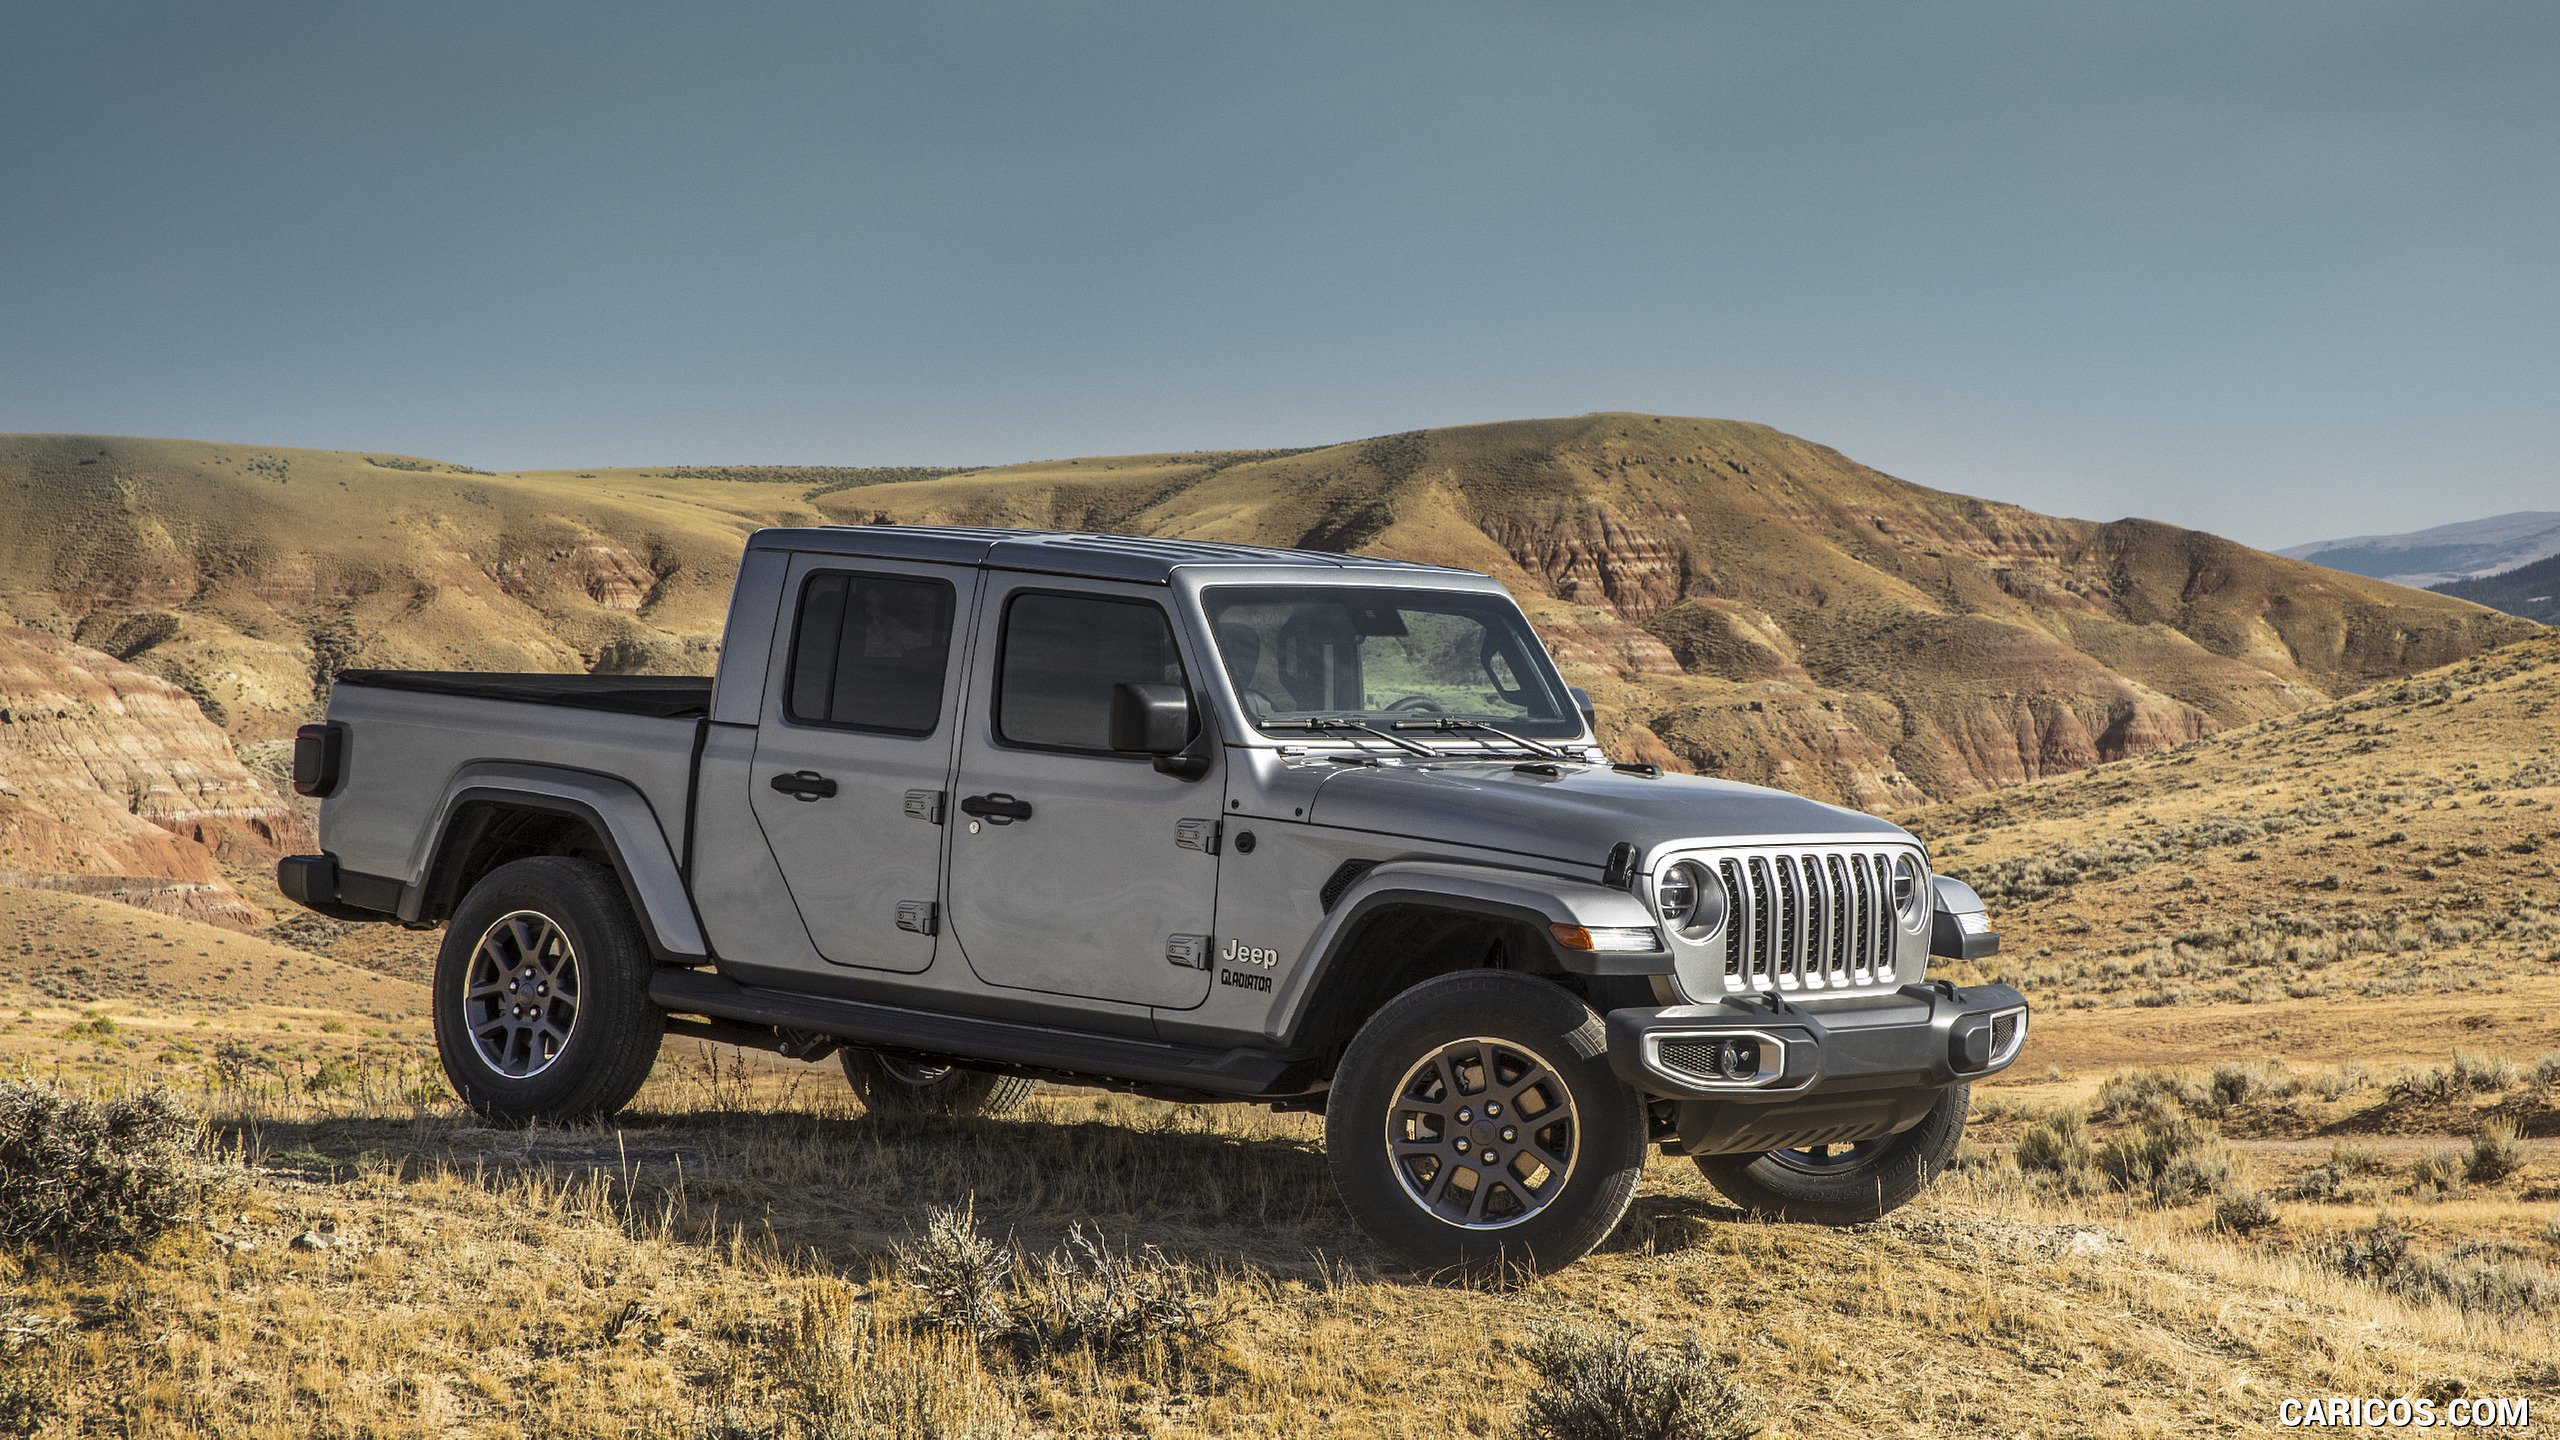 2020 Jeep Gladiator Overland   Front Three Quarter HD Wallpaper 206 2560x1440